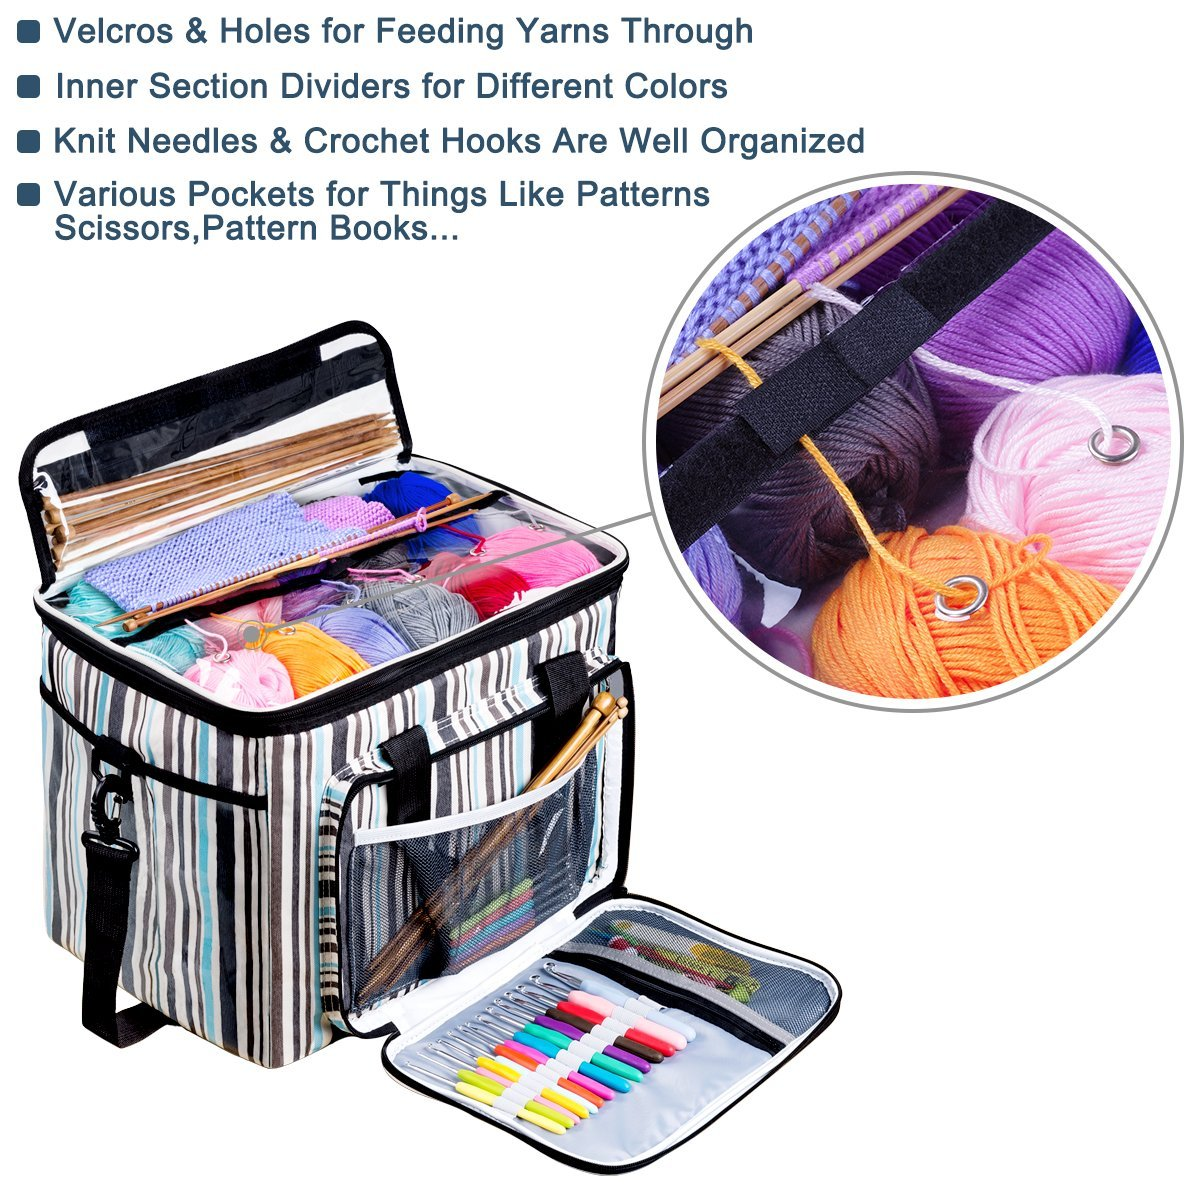 BONTIME Knitting Bag - High Capacity Striped Yarn Storage Tote Bag,Project Bags with Roomy Interior,Great for Organizing Everything You Need for Each of Projects,Large by BONTIME (Image #4)